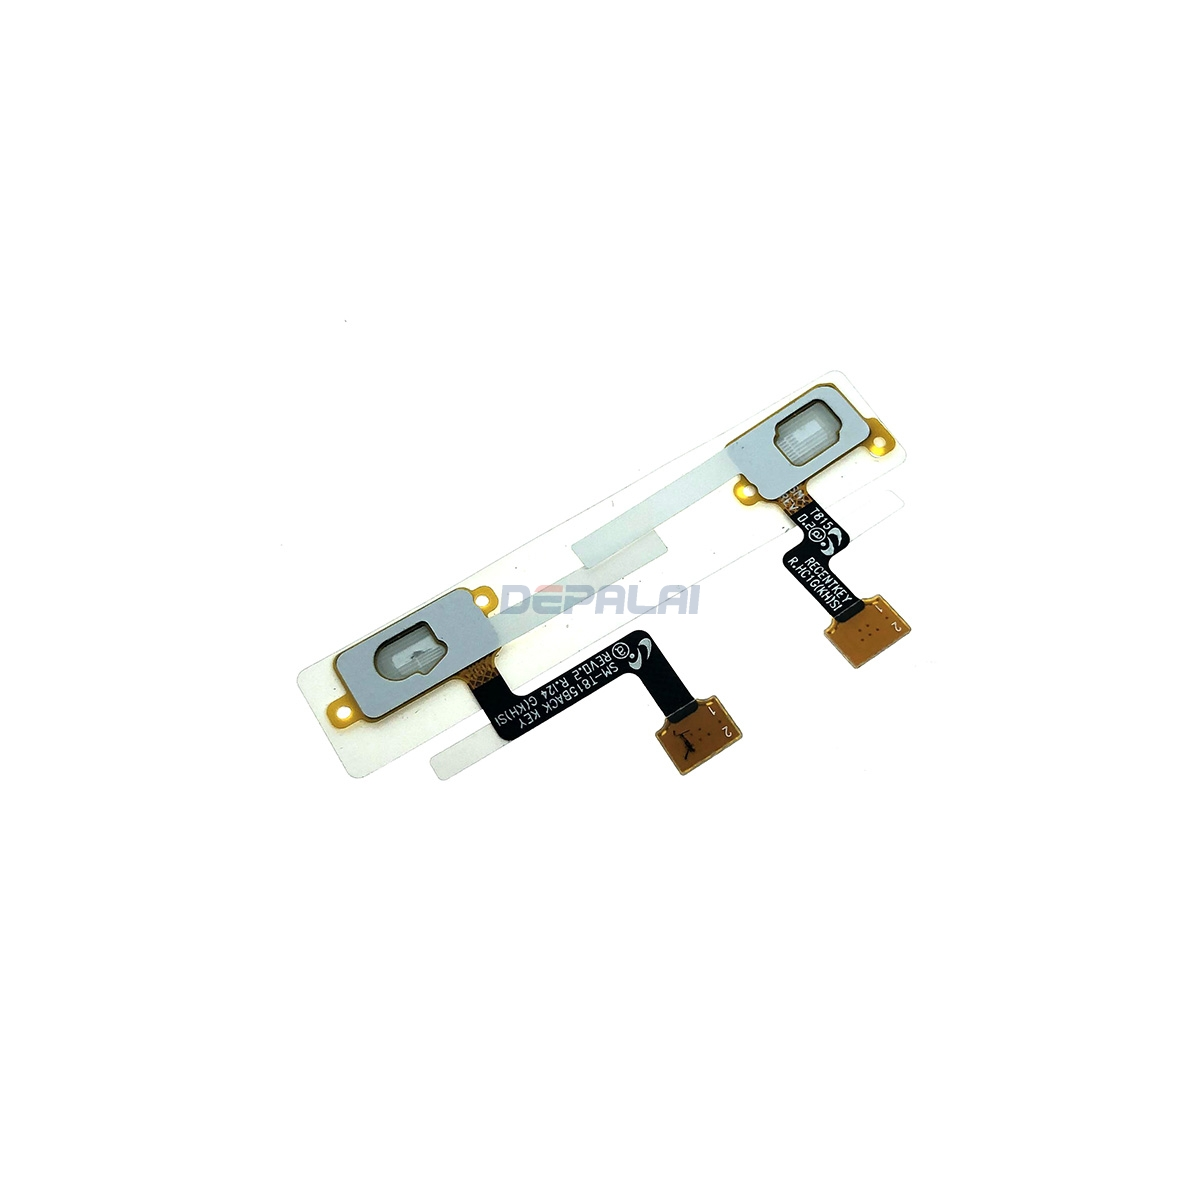 For Samsung Galaxy Tab S2 9.7 SM-T810 T815 Left And Right Navigation Sensor Flex Cable